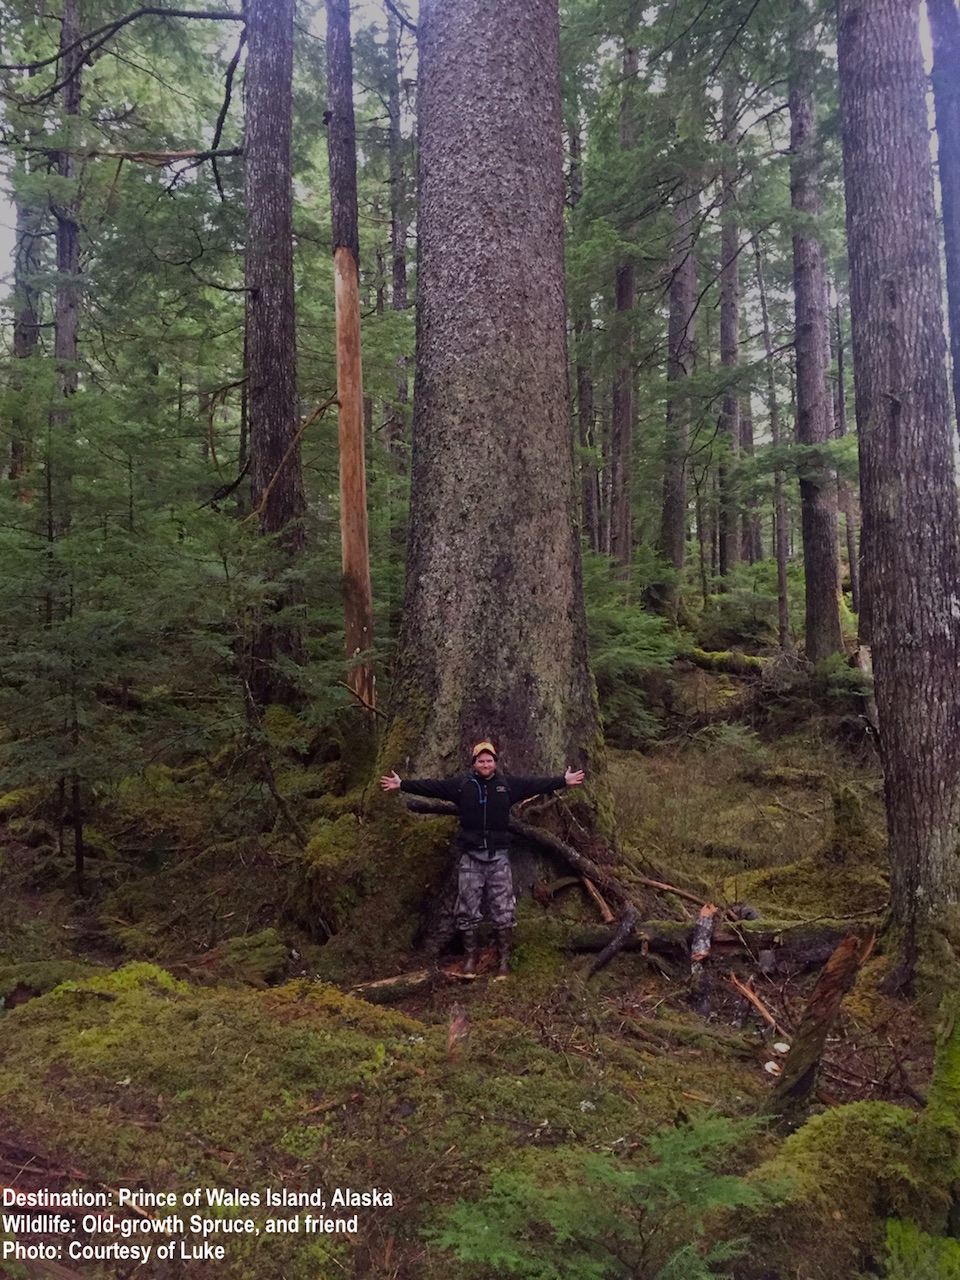 GIANT OLD-GROWTH SPRUCE CAN REACH SIX-FEET IN DIAMETER! IMAGE THANKS TO LUKE.